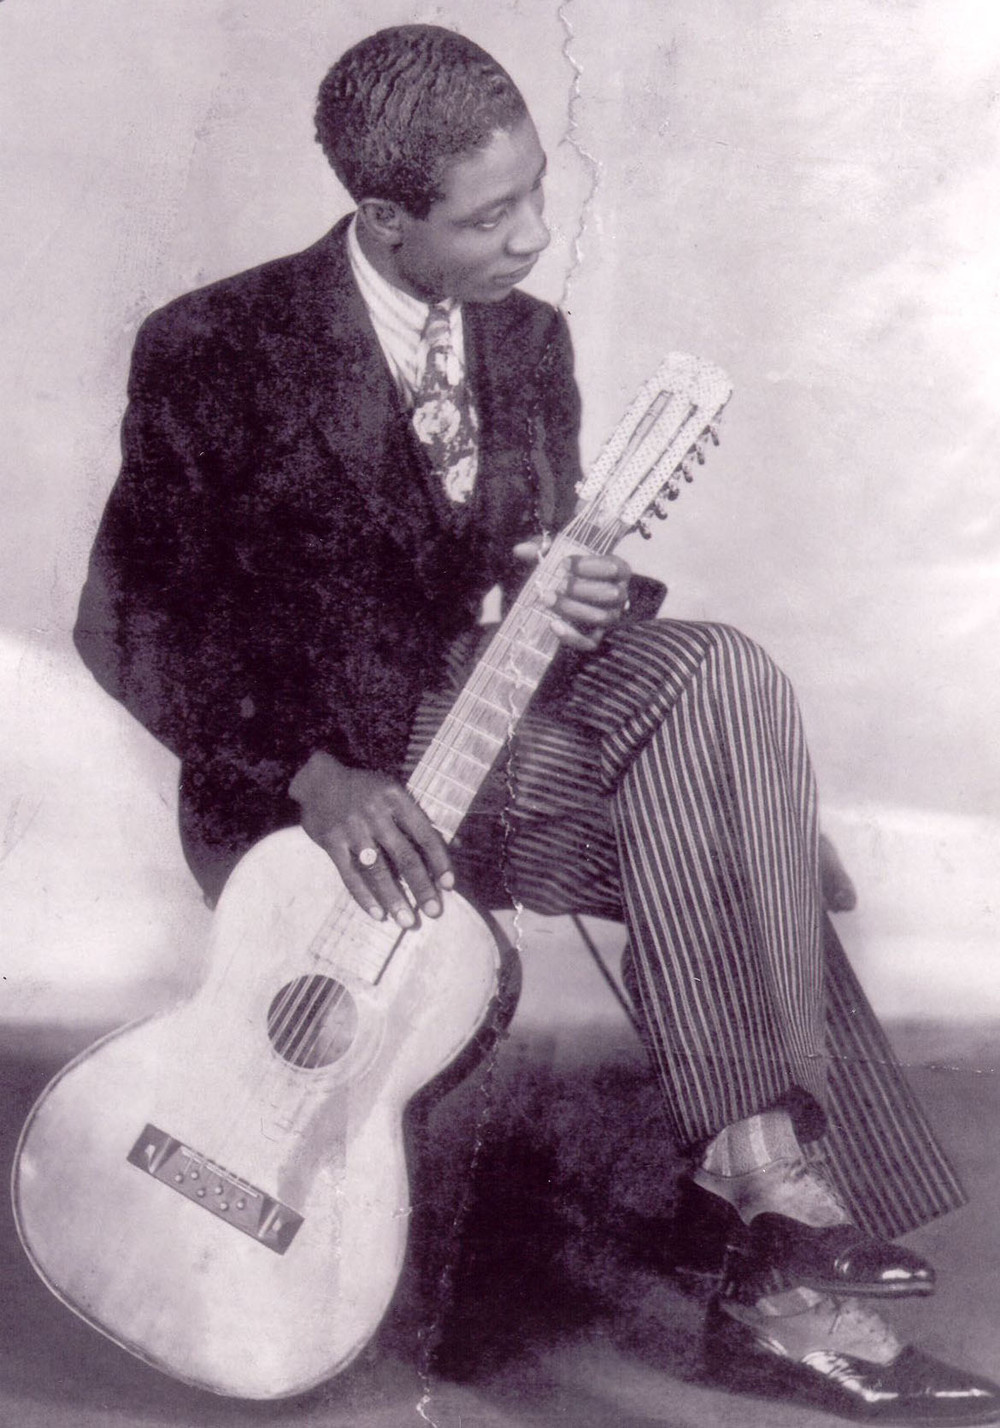 Lonnie Johnson (1939-1942)